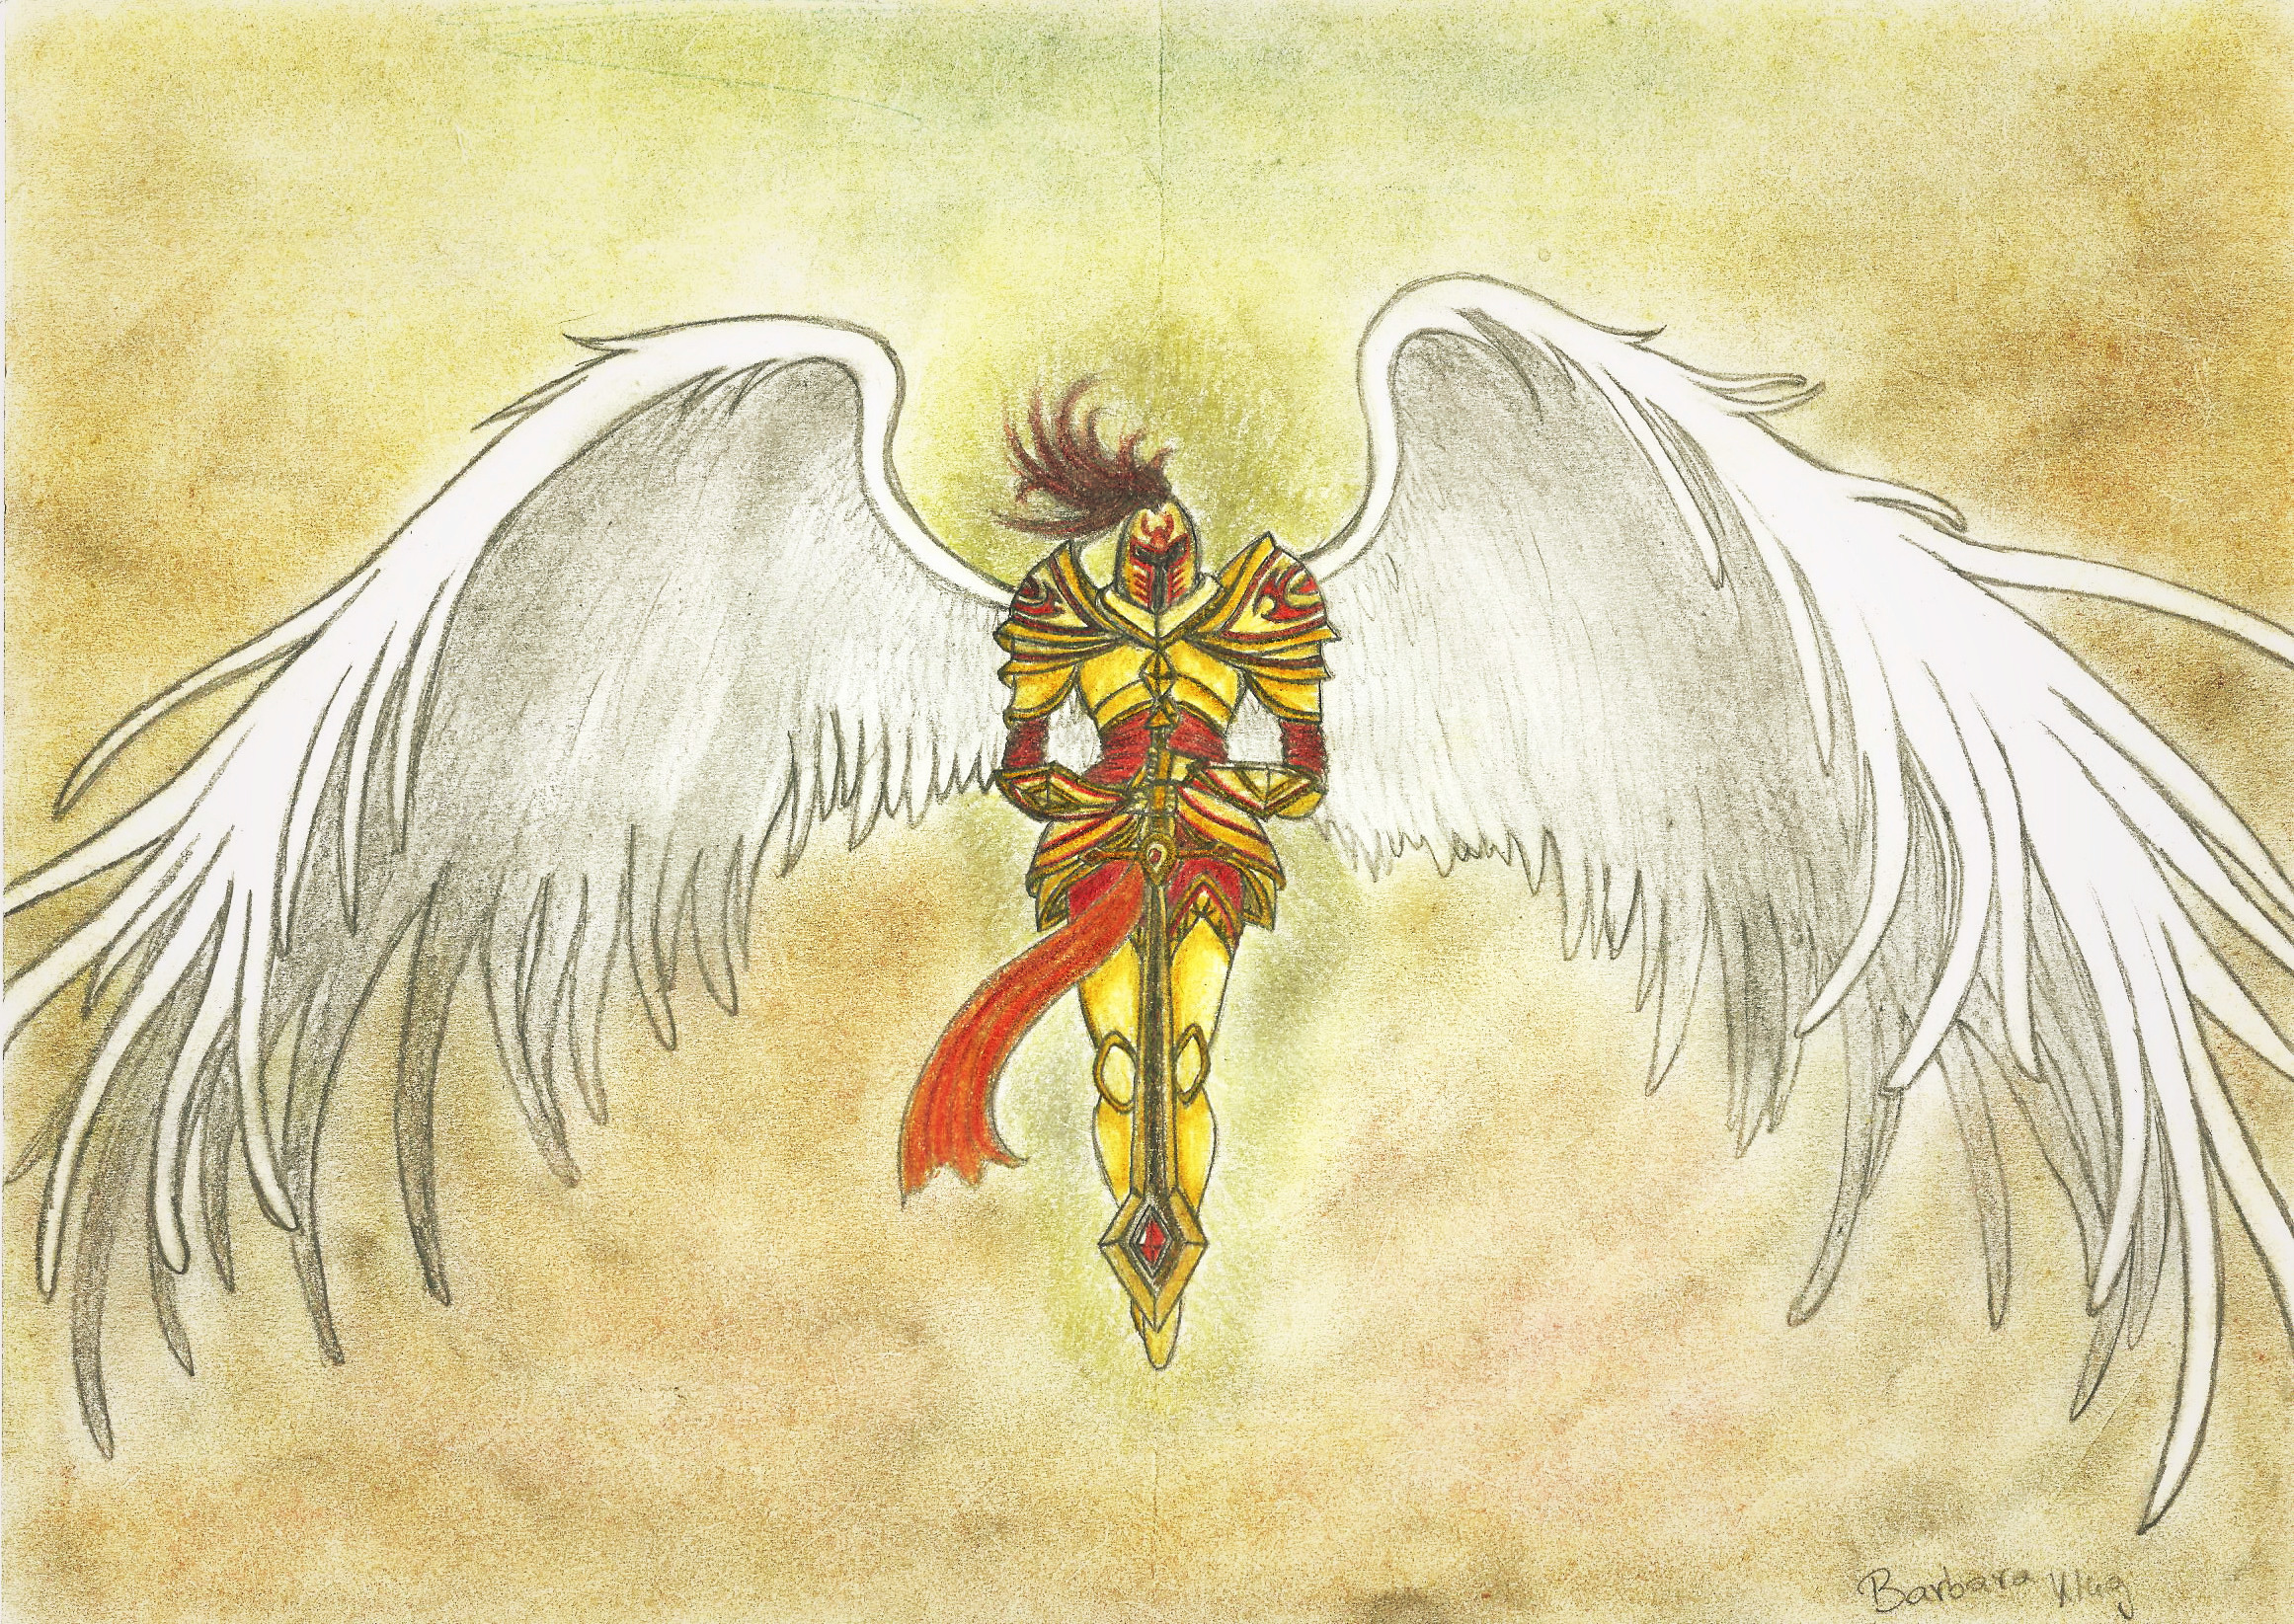 league of legends kayle the judicator colored by cita555 on